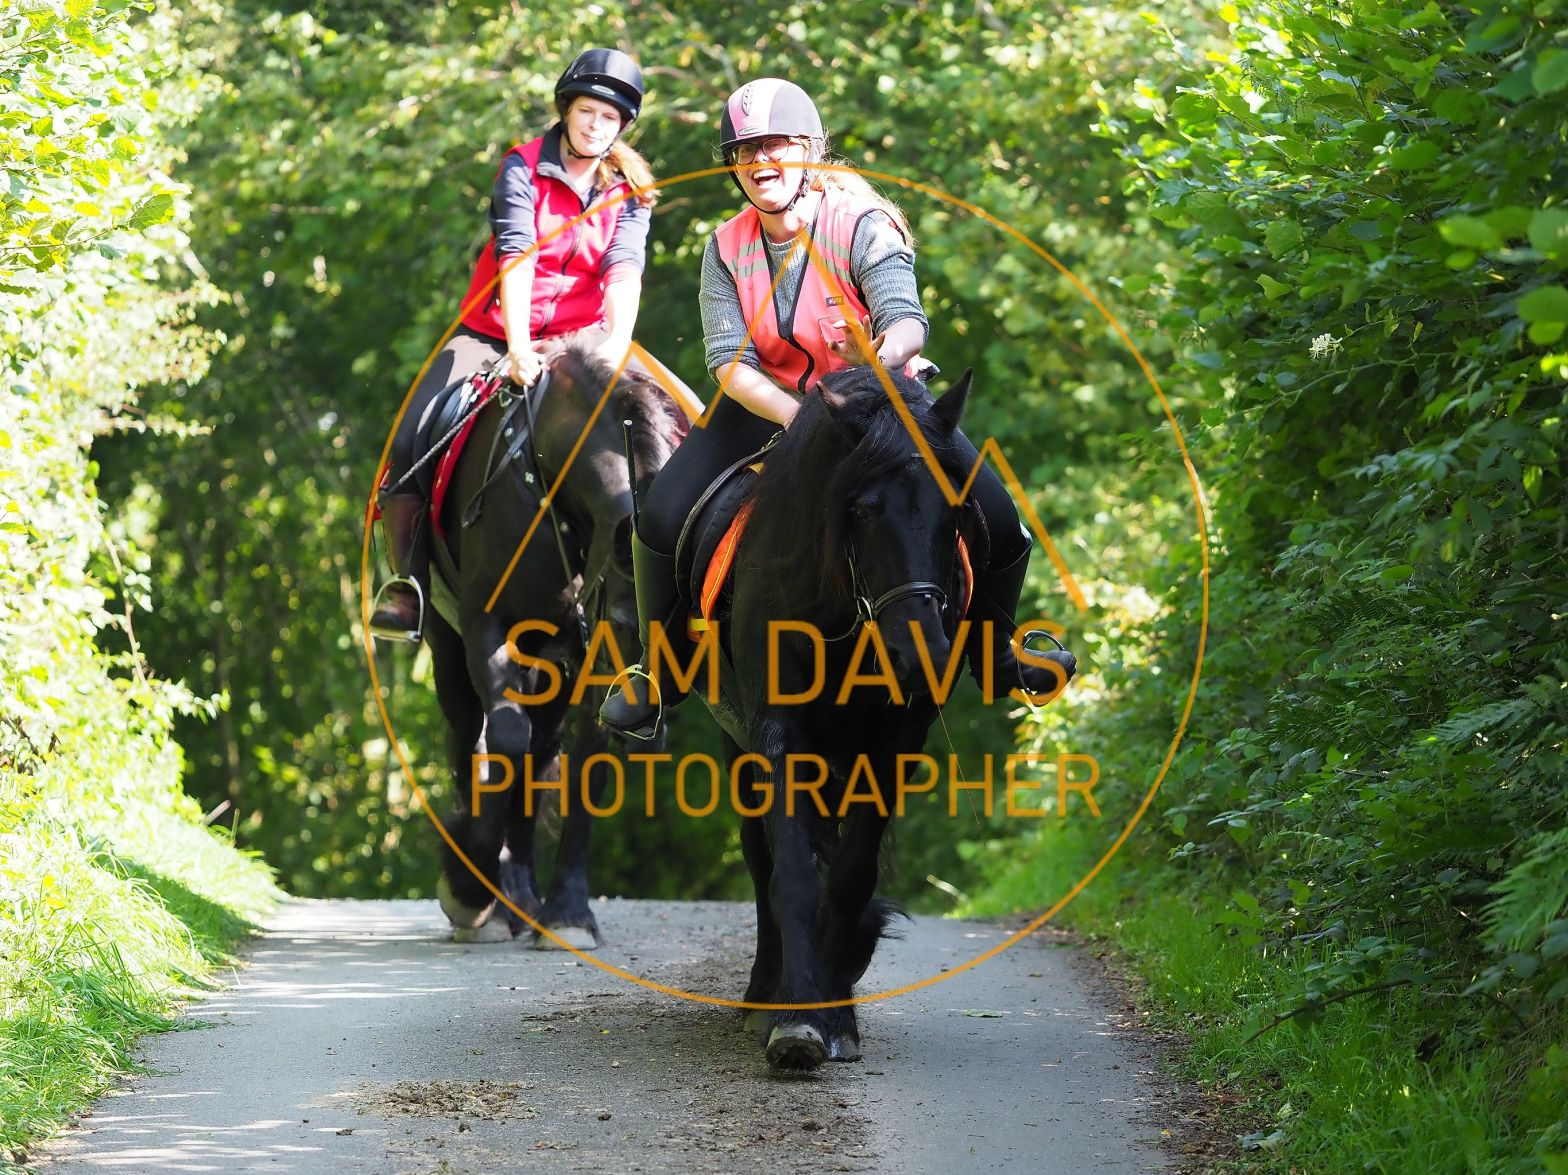 Having fun on the Oswestry Riding Club fun ride by Sam Davis Photographer